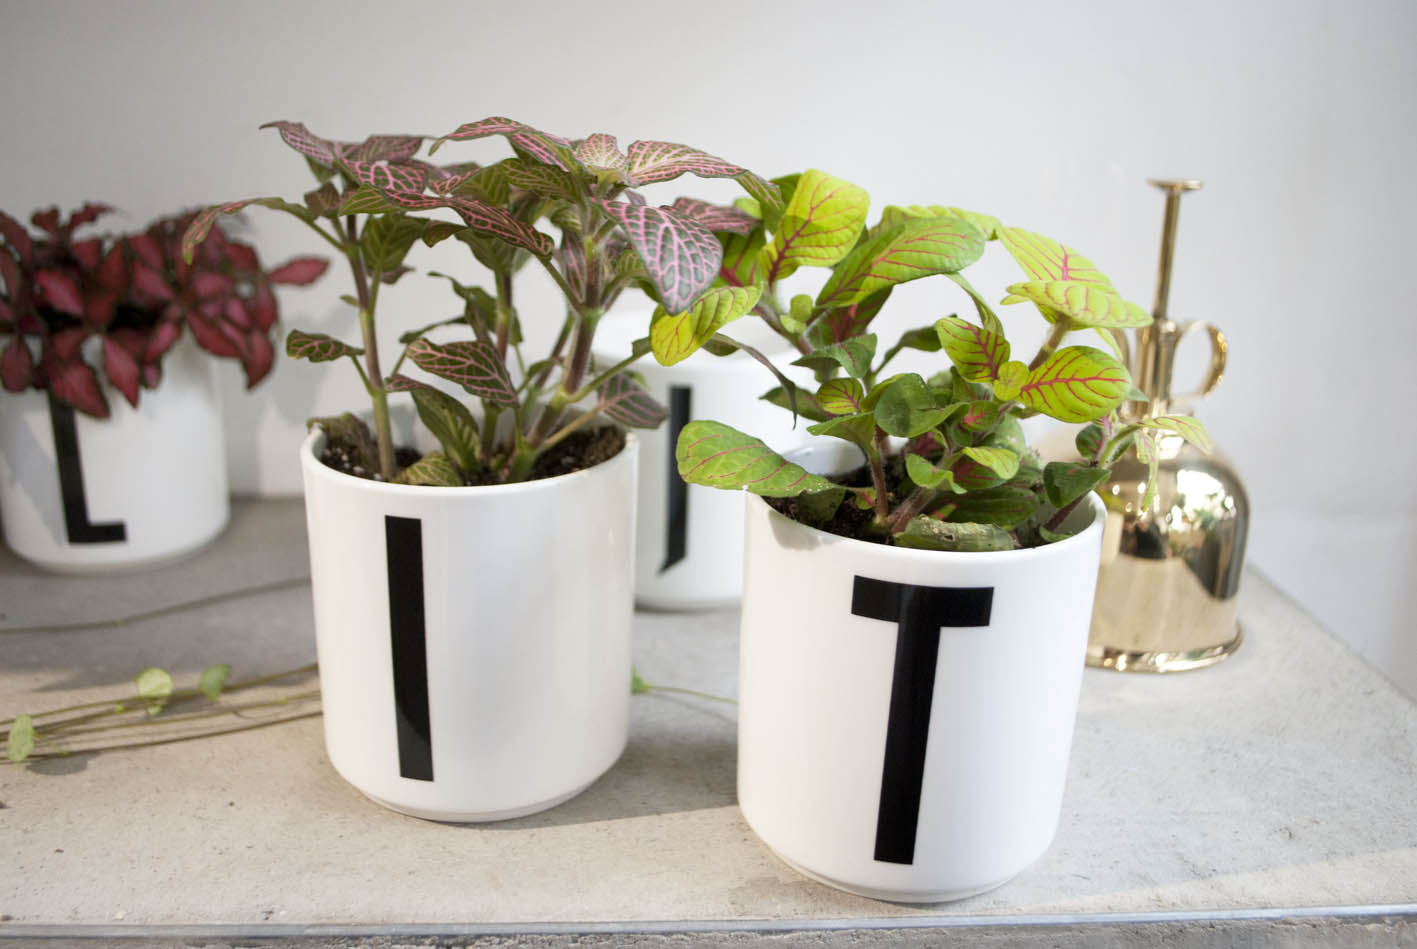 They hold a wide selection of cool pots in the Hackney shop